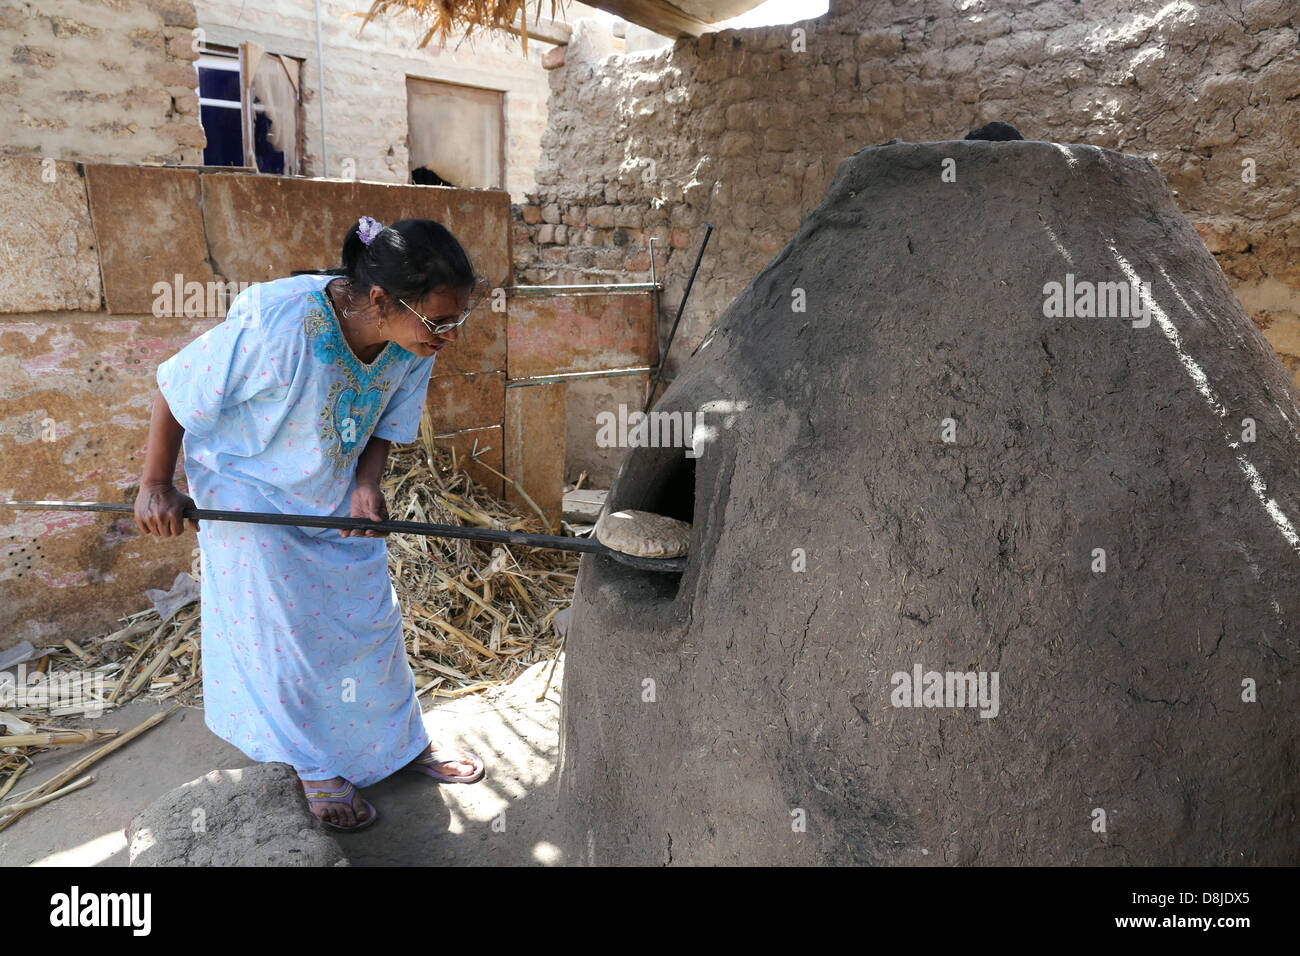 Egyptian woman making flat bread in a stone oven, Upper Egypt - Stock Image